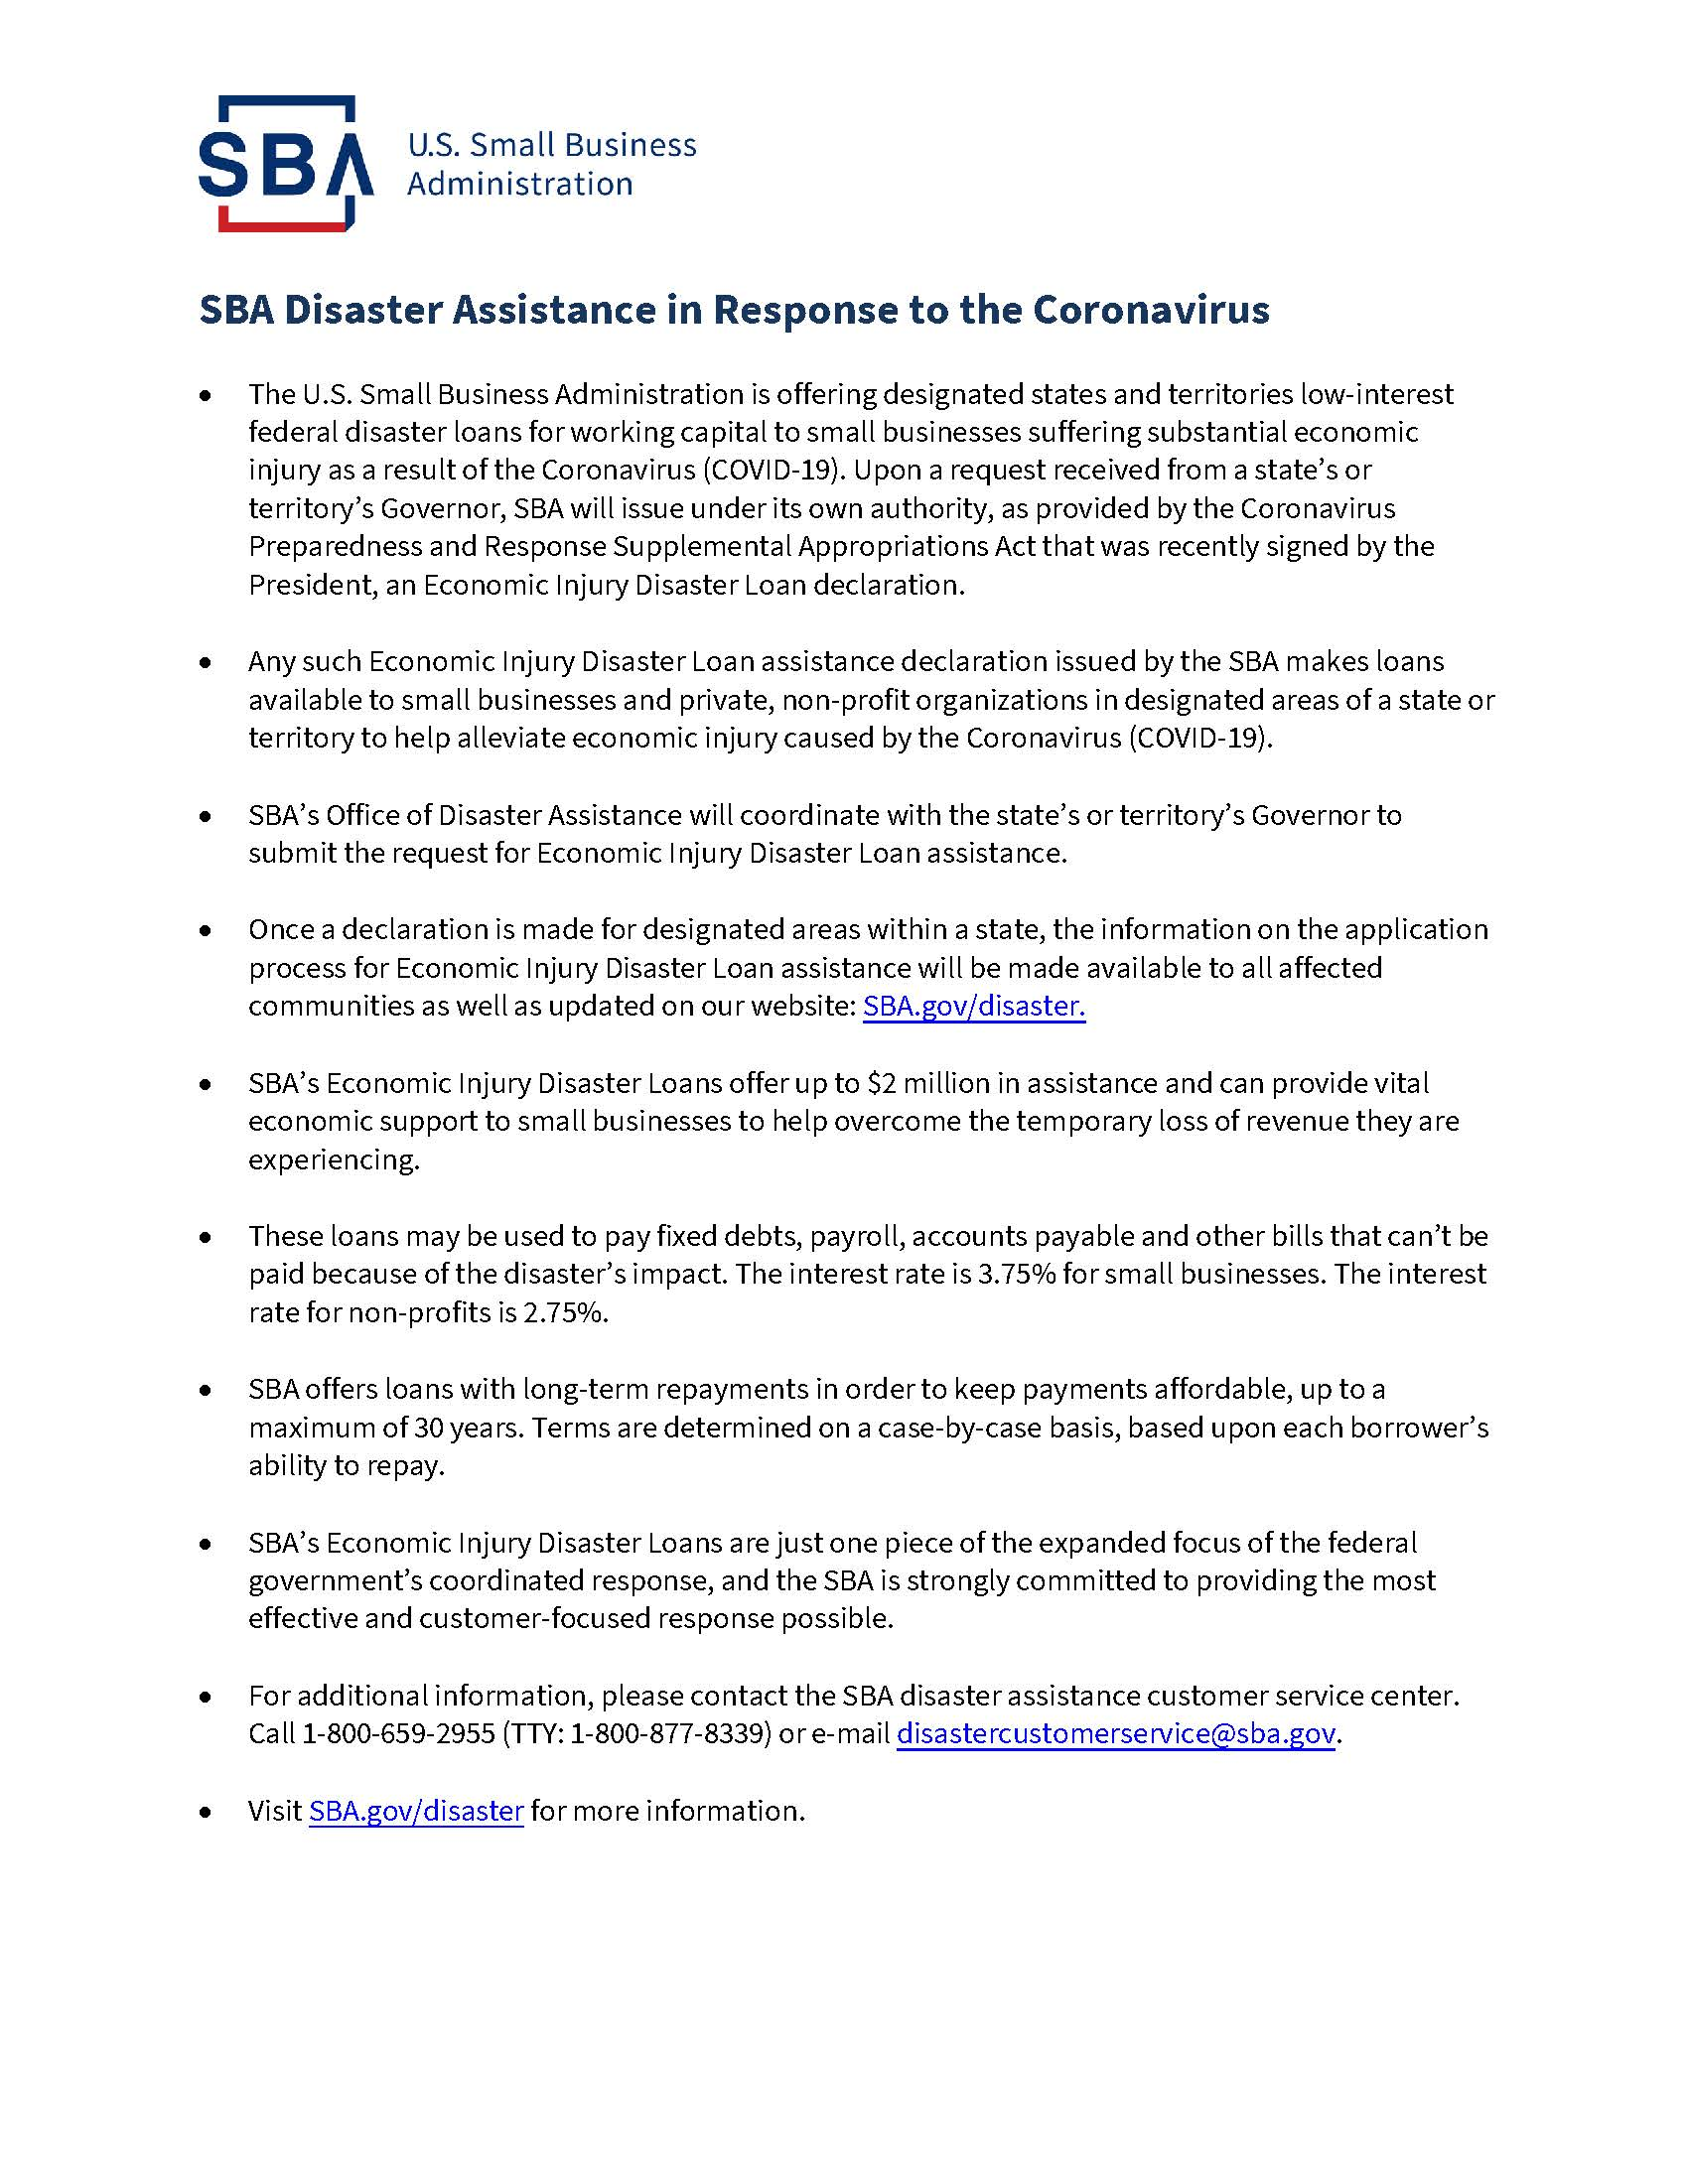 COVID-19 SBA Disaster Assistance_Resources for Businesses-508